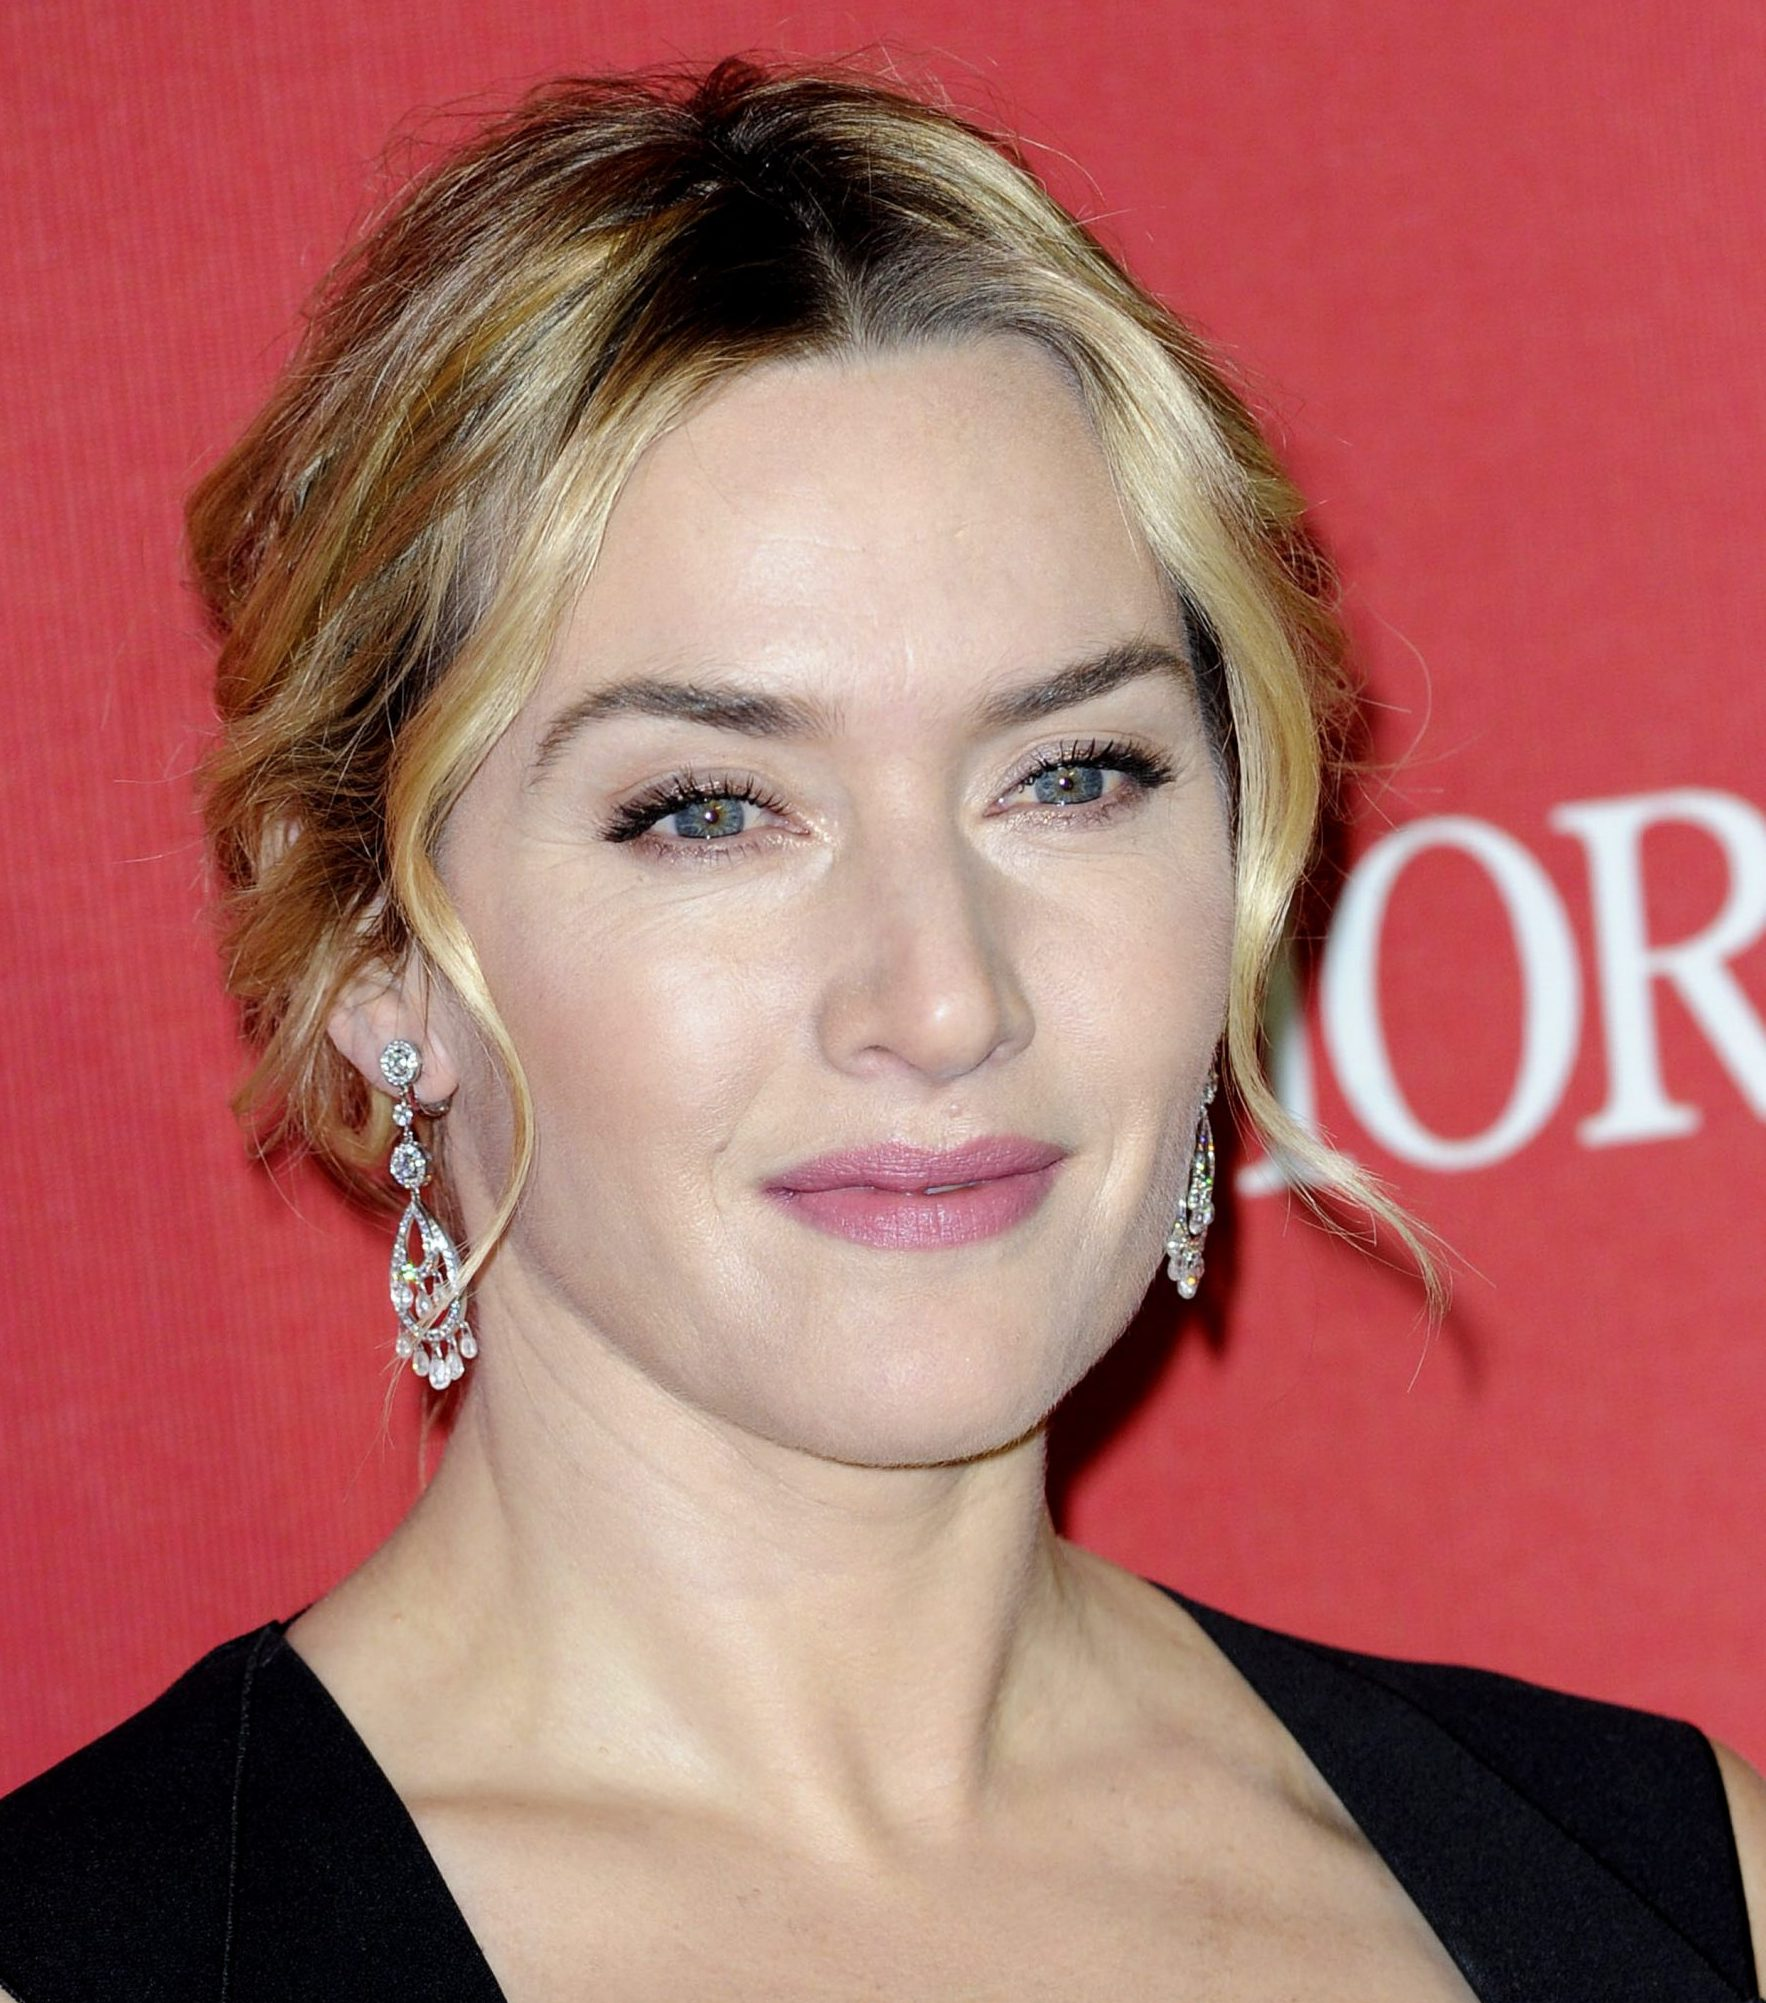 Kate Winslet smiles at a red carpet event. Her blonde hair is elegantly tied back with a few wavy strands falling around her face. She wears dangling crystal earrings and a black dress.